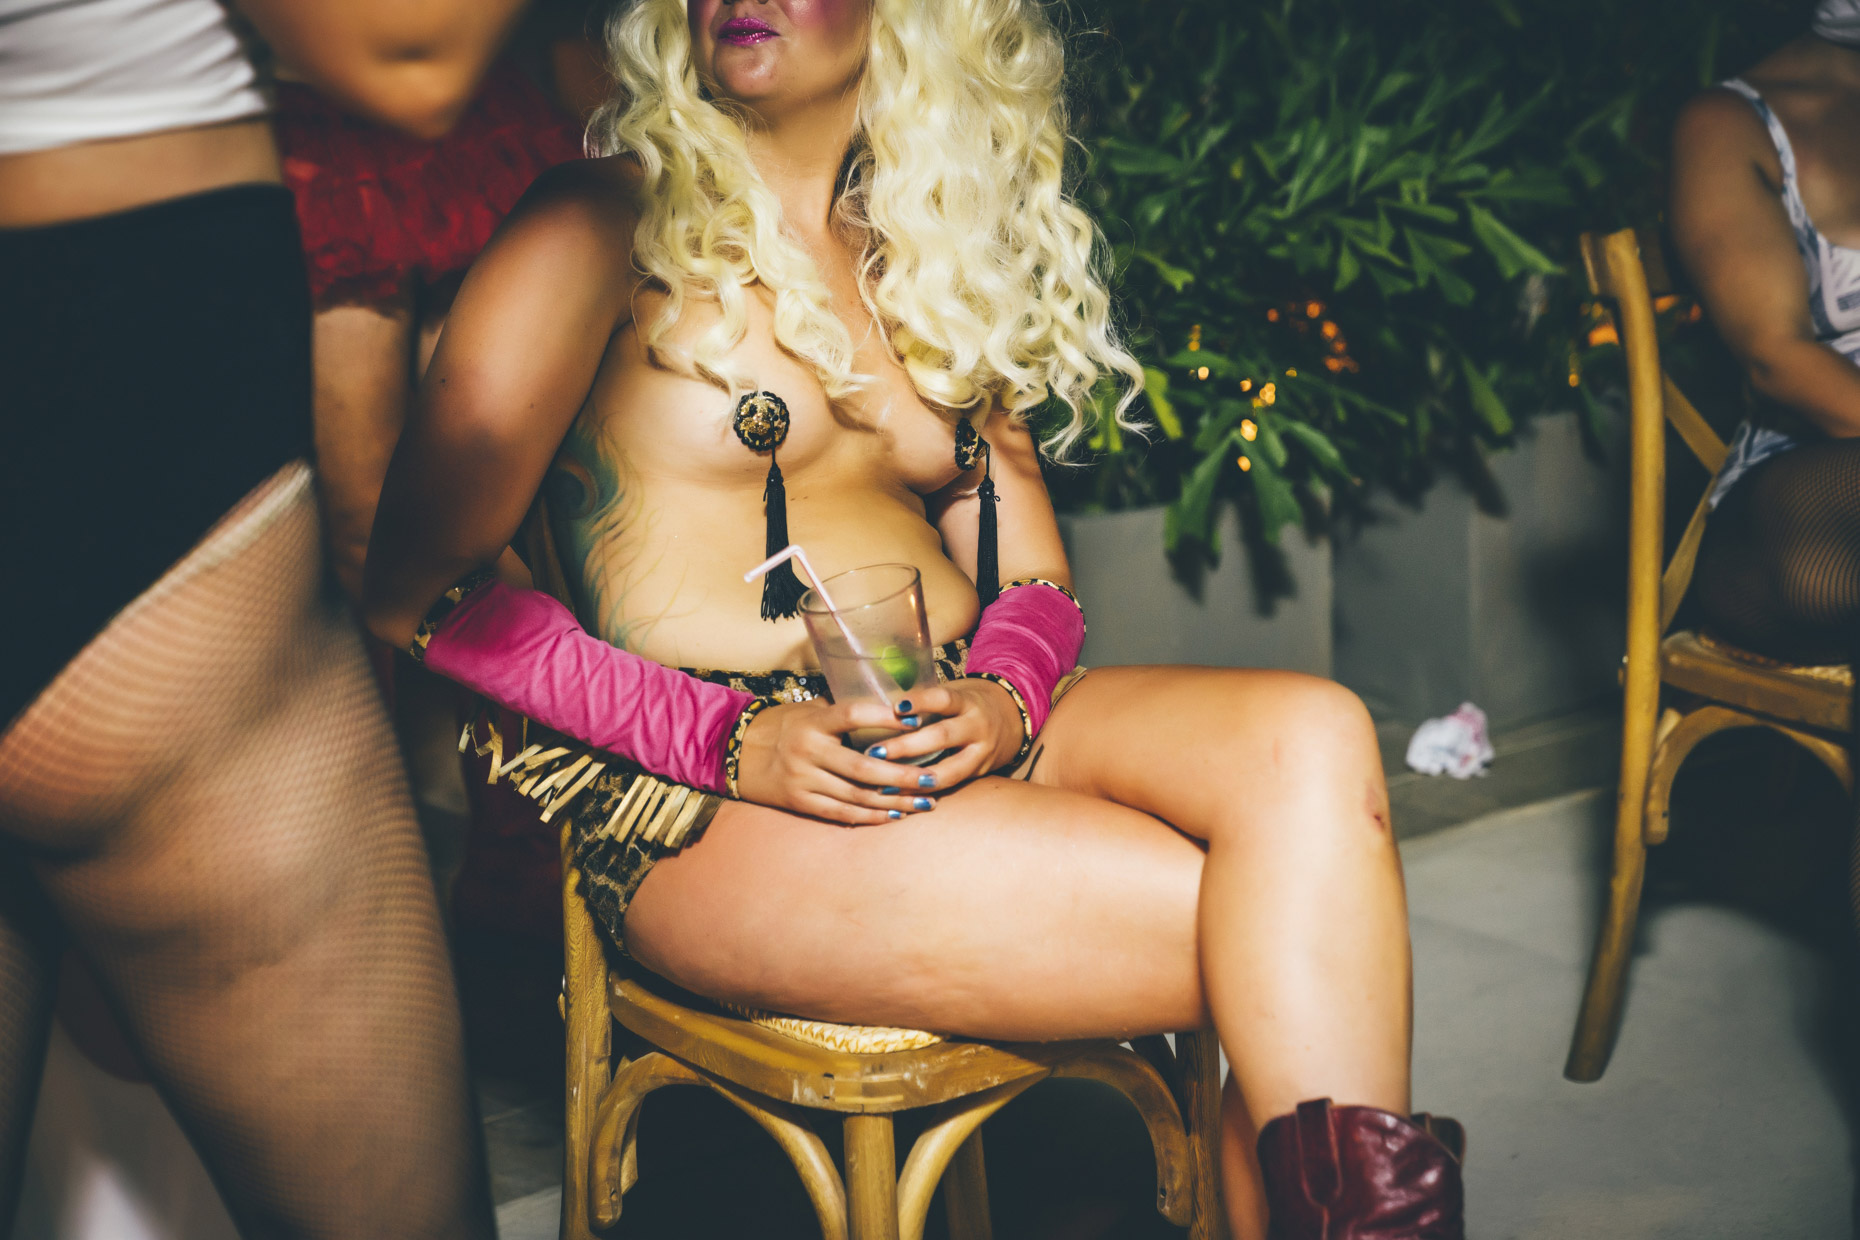 Woman wearing nipple tassles holding cocktail at party